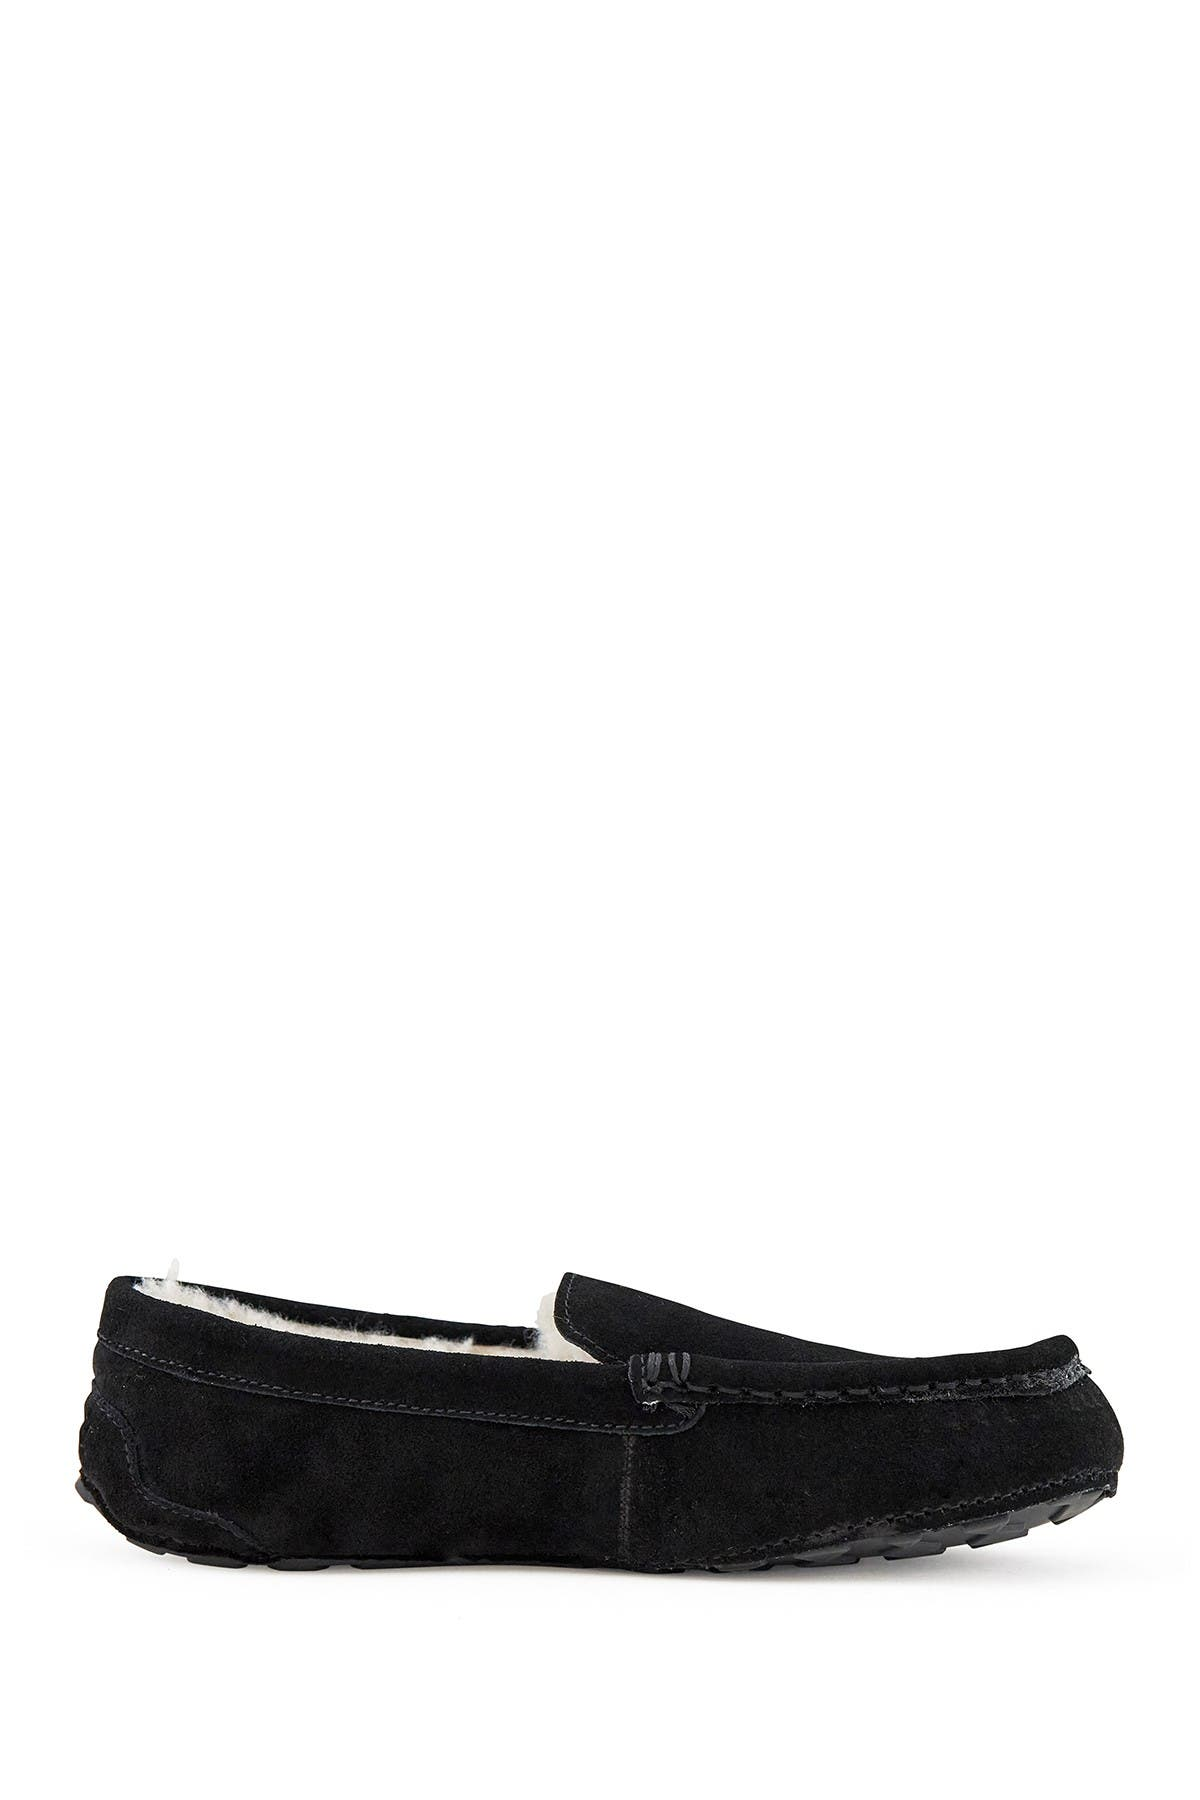 Image of NEST FOOTWEAR Toasty Suede Faux Fur Lined Moccasin